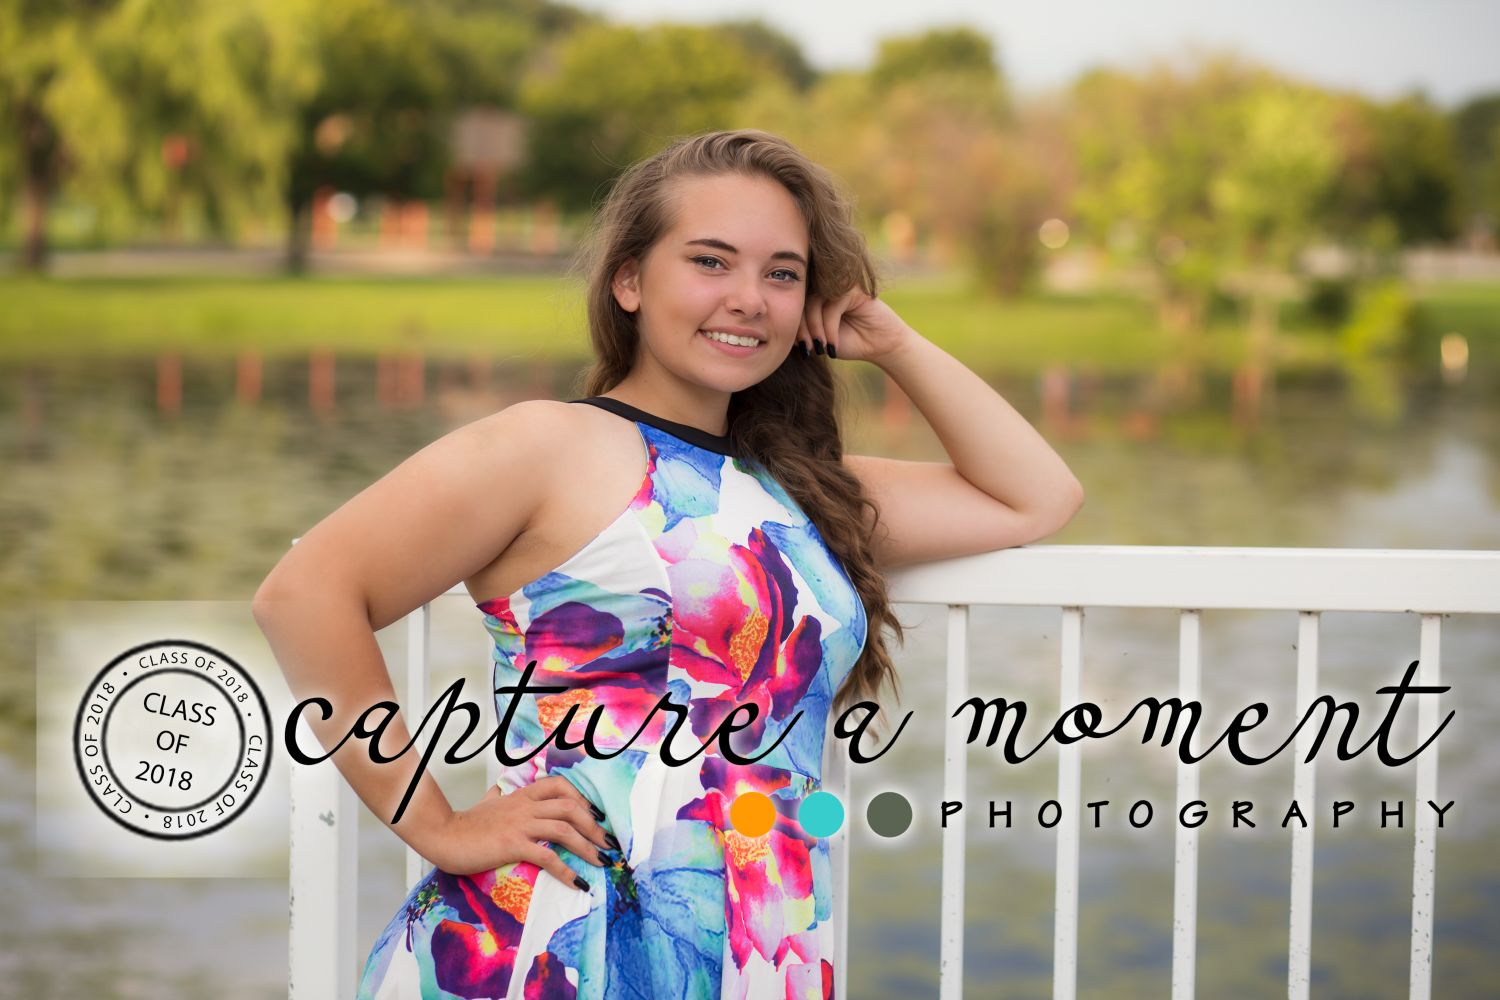 Courtney - L'Anse Creuse High School - Class of 2018